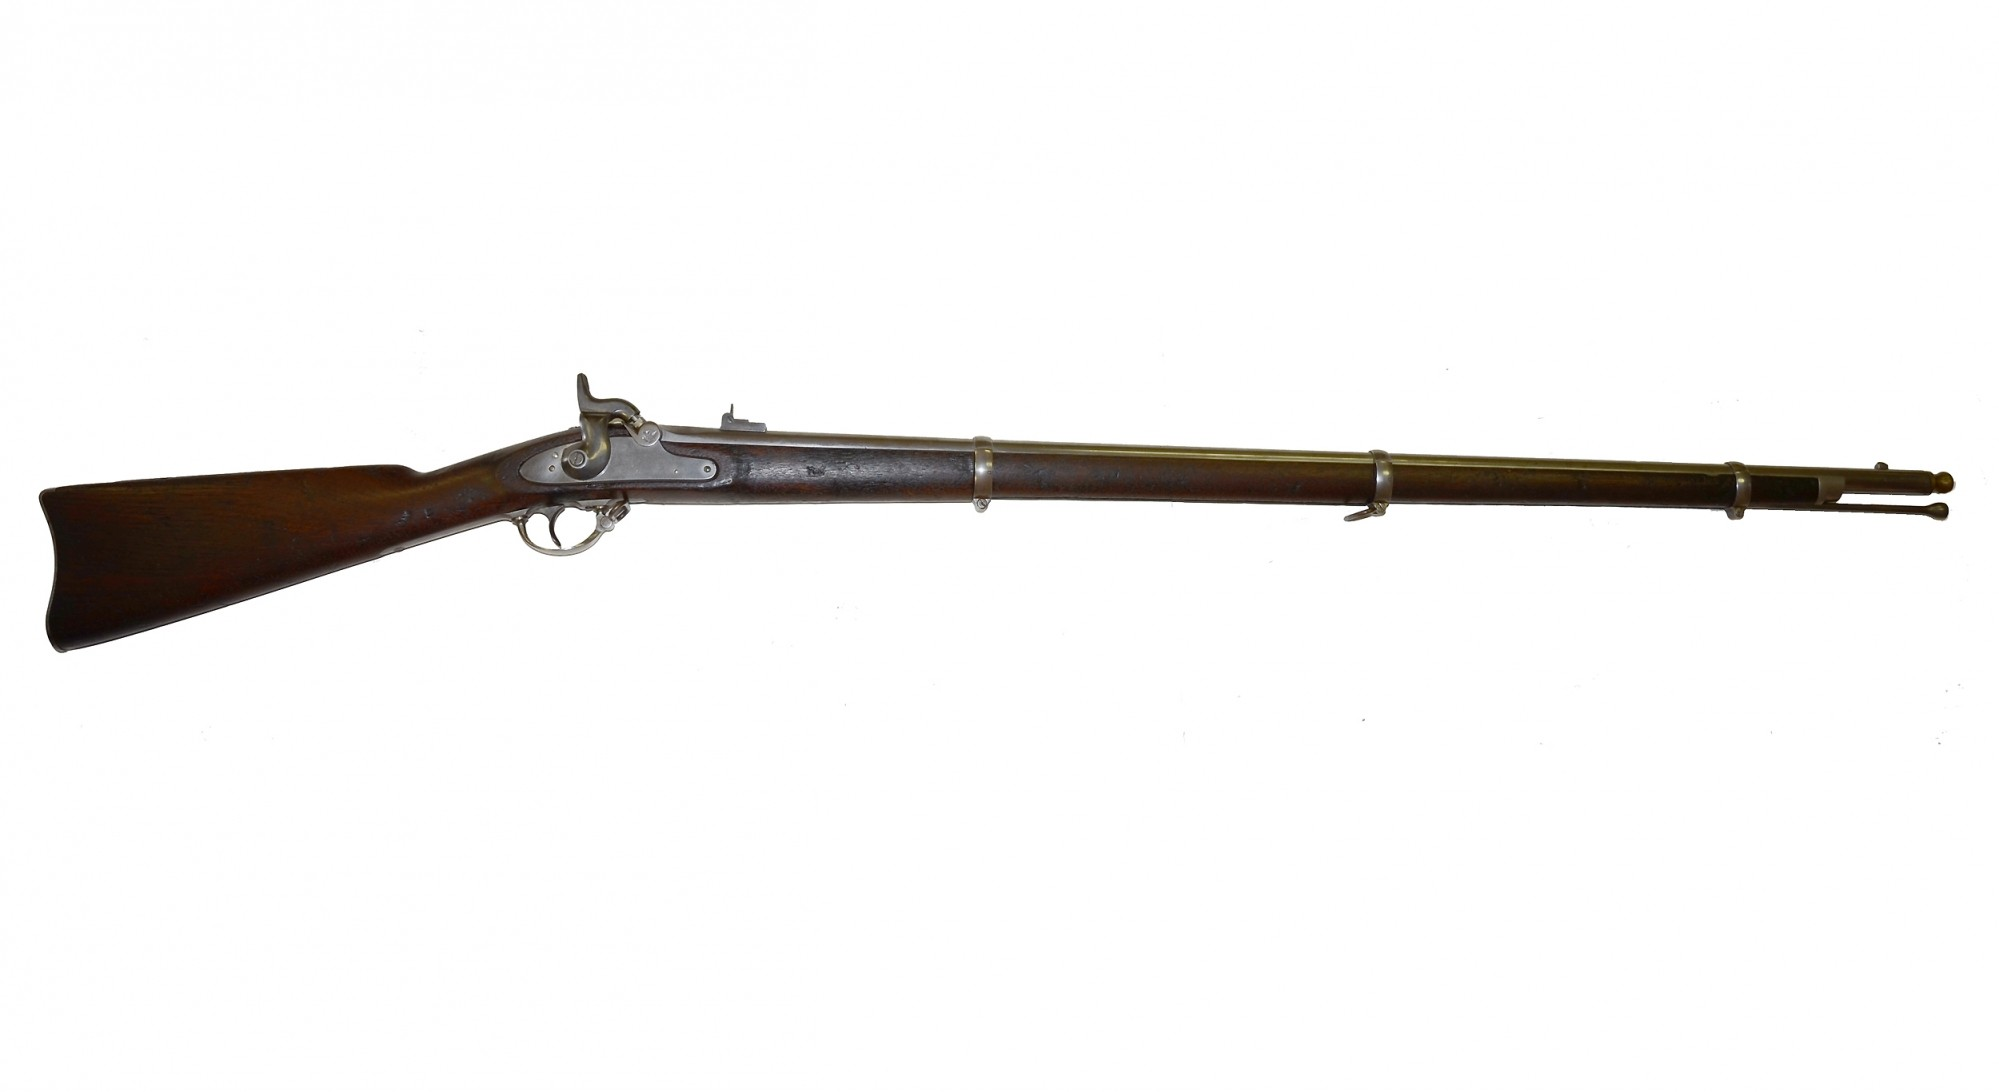 COLT MODEL 1861 'SPECIAL' MUSKET, DATED 1863